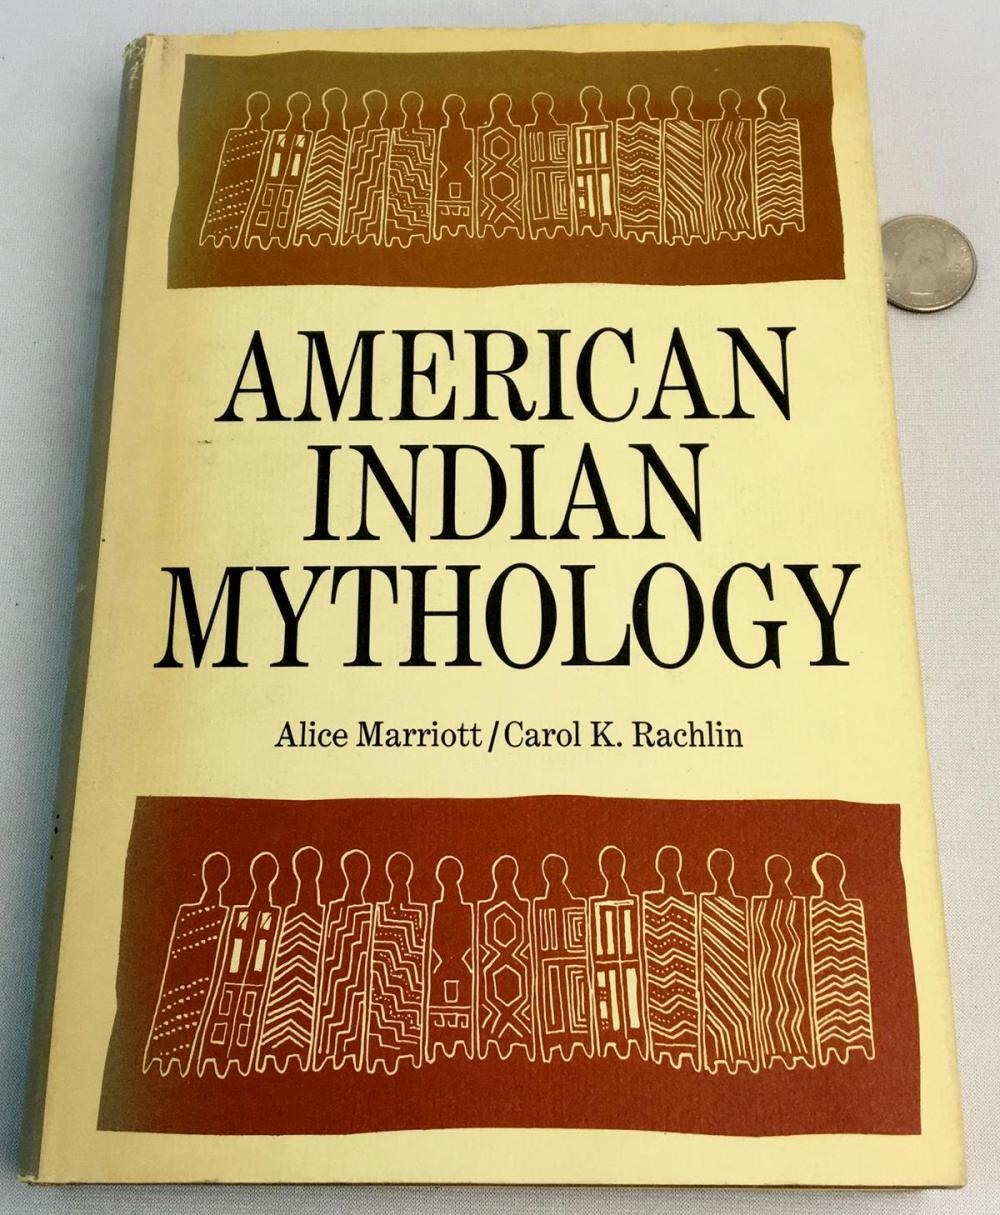 1968 American Indian Mythology by Alice Marriott and Carol K. Rachlin w/ Dust Jacket Illustrated FIRST EDITION